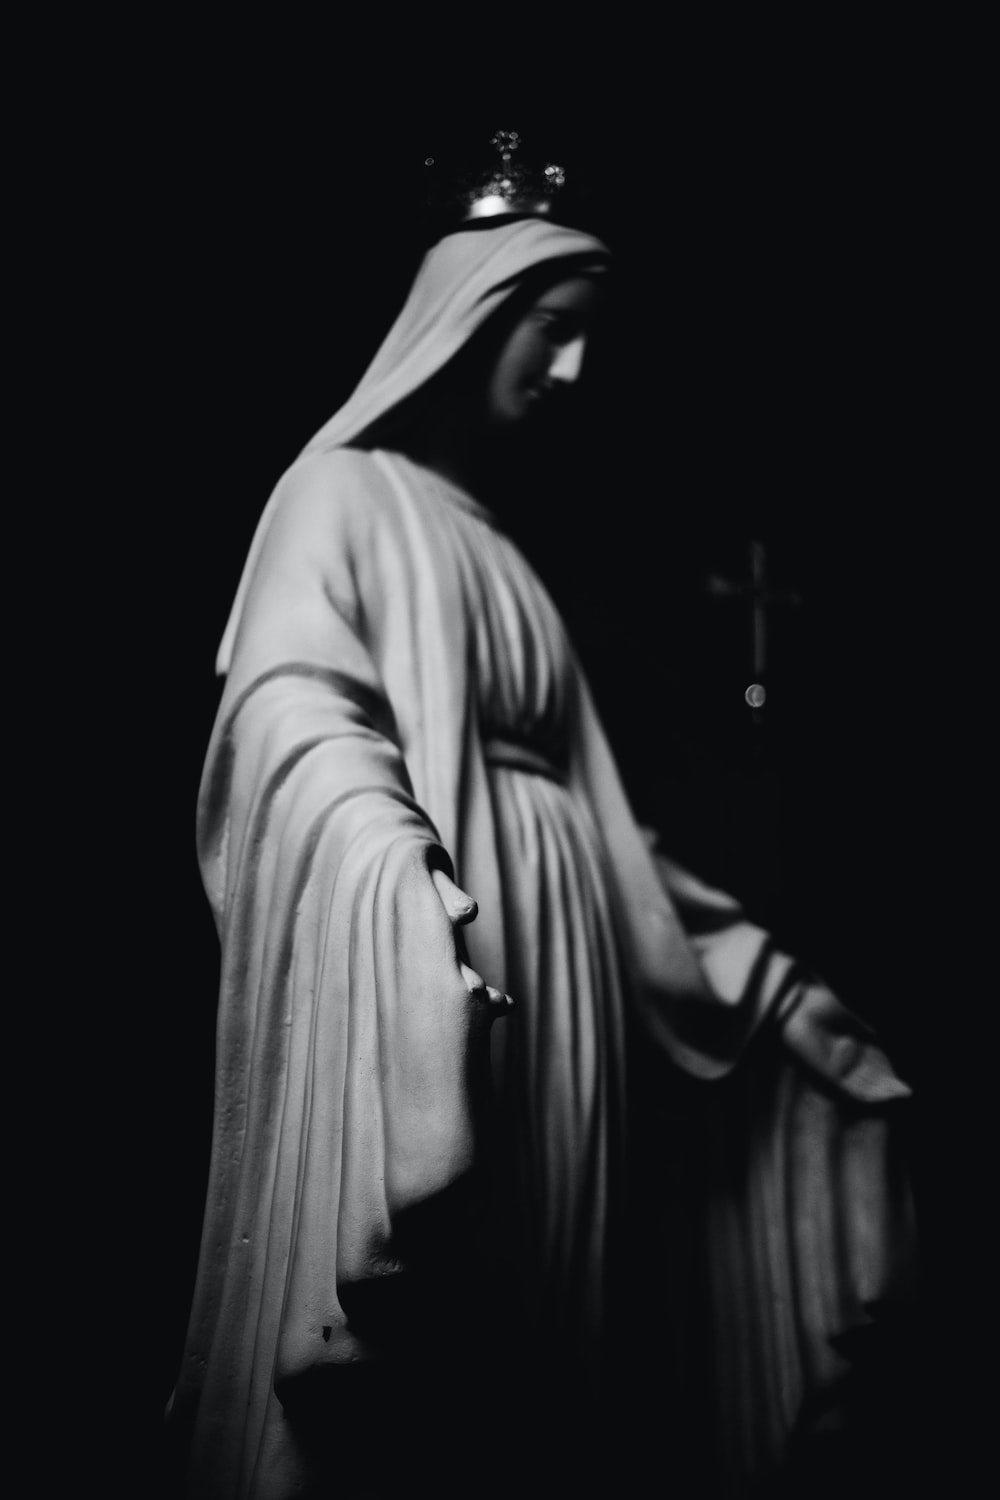 Virgin Mary Statue Photo Free Apparel Image On Unsplash